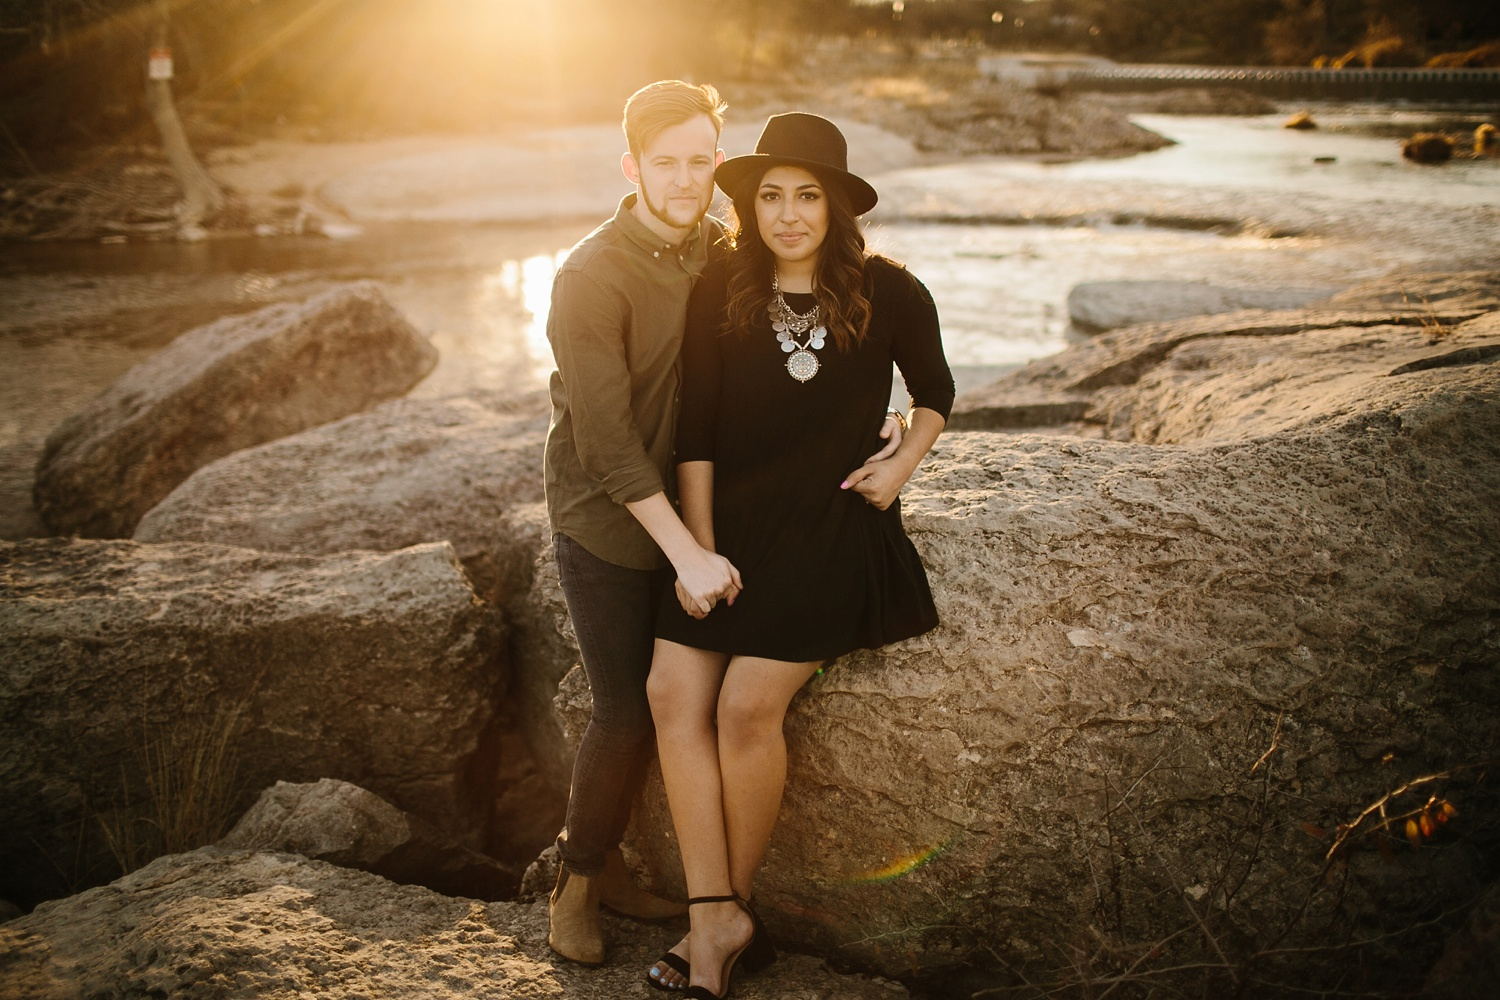 Grant + Lysette - floral dress engagement session by North Texas Wedding Photographer Rachel Meagan Photography067